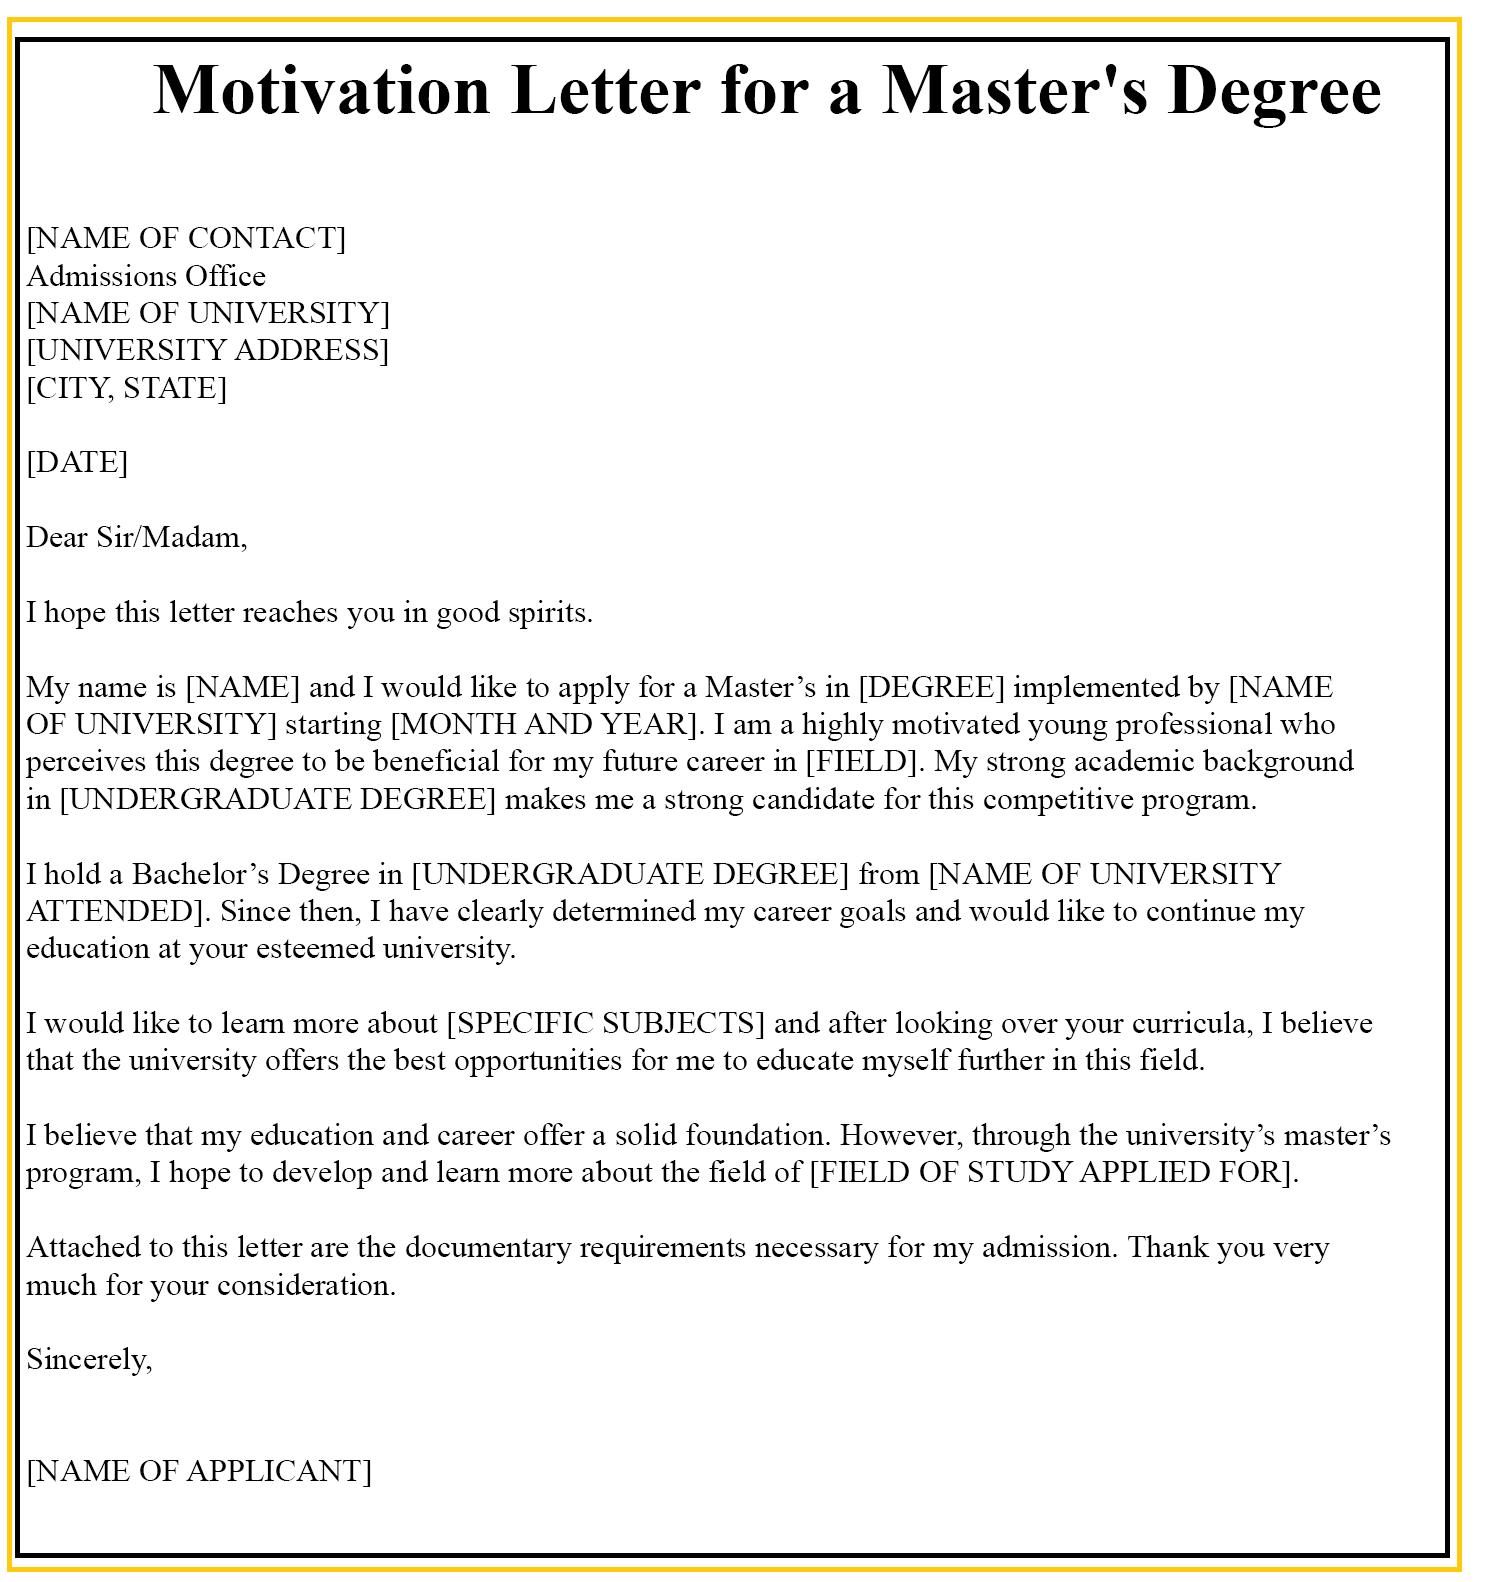 Sample Motivation Letter For Master's Degree